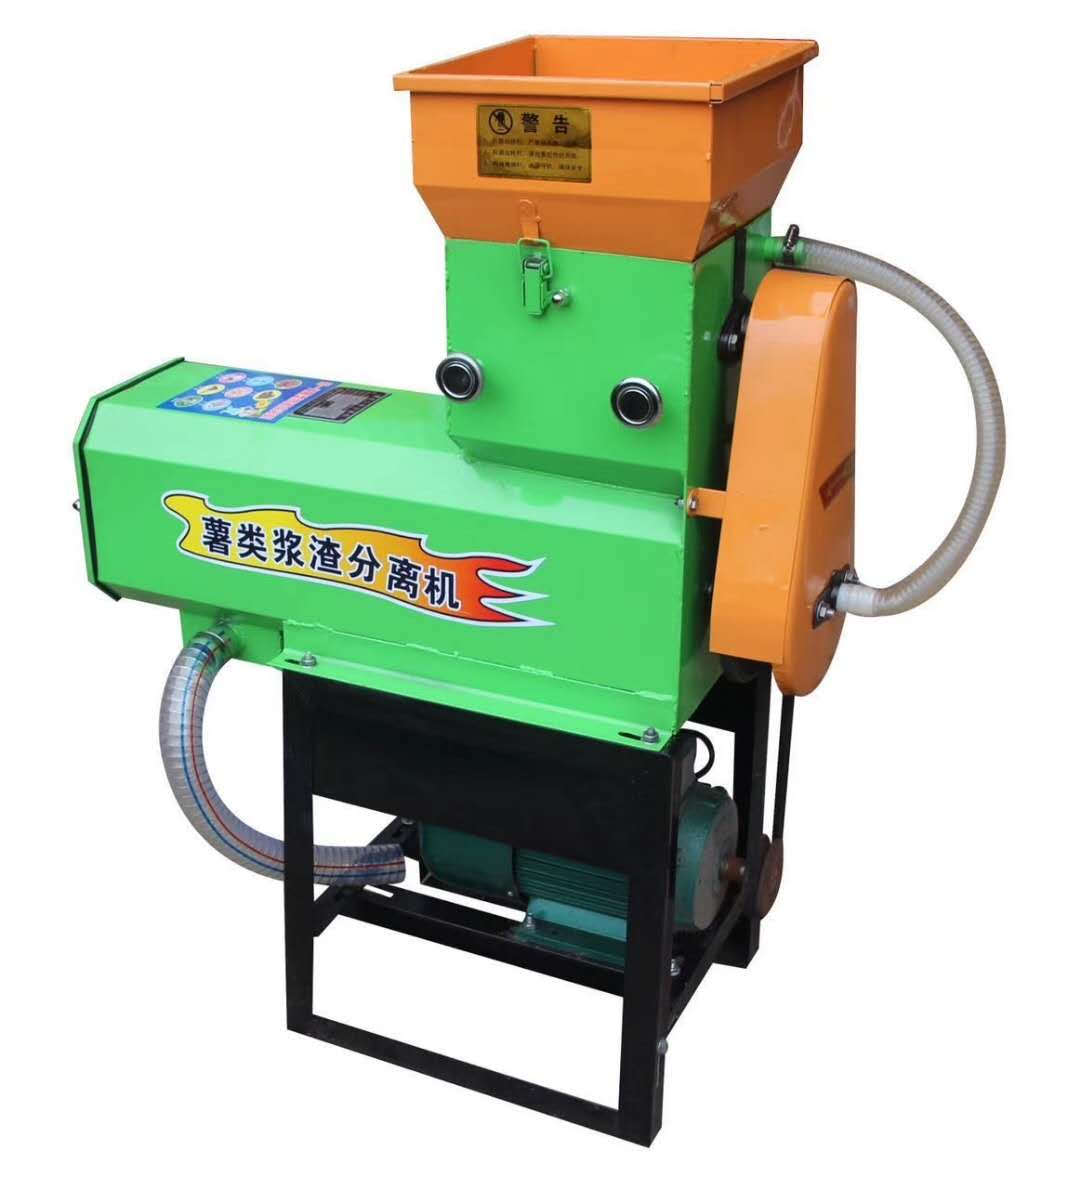 Supper Quality Potato Starch Making Machine